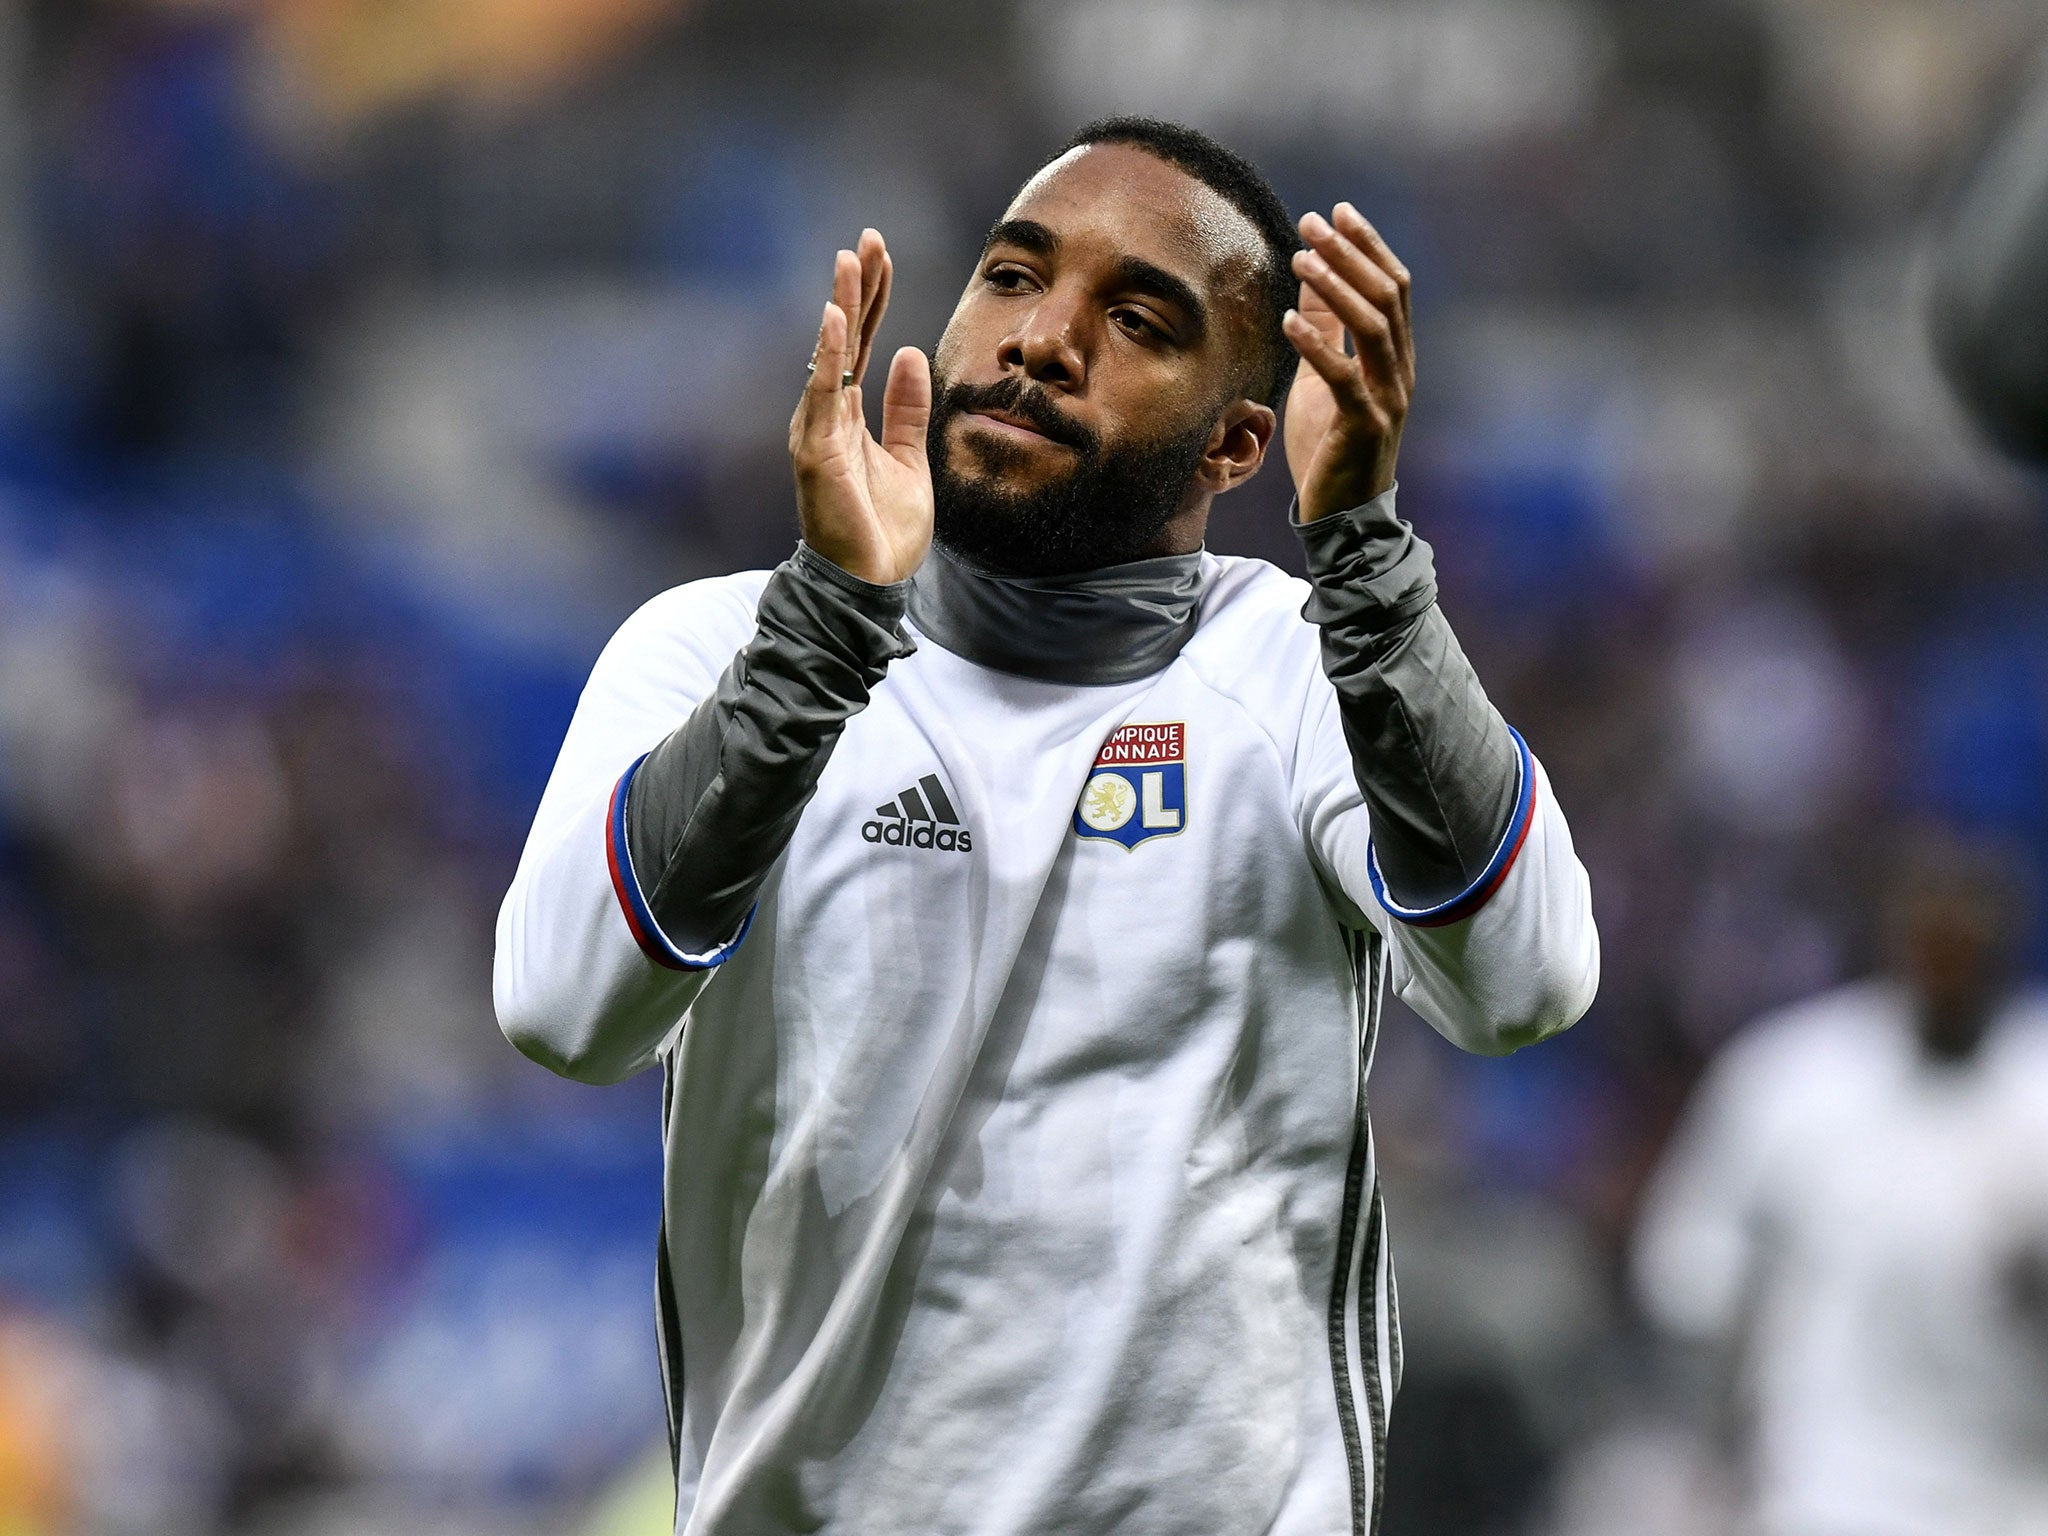 Arsenal make £39m offer for Alexandre Lacazette but forward is not